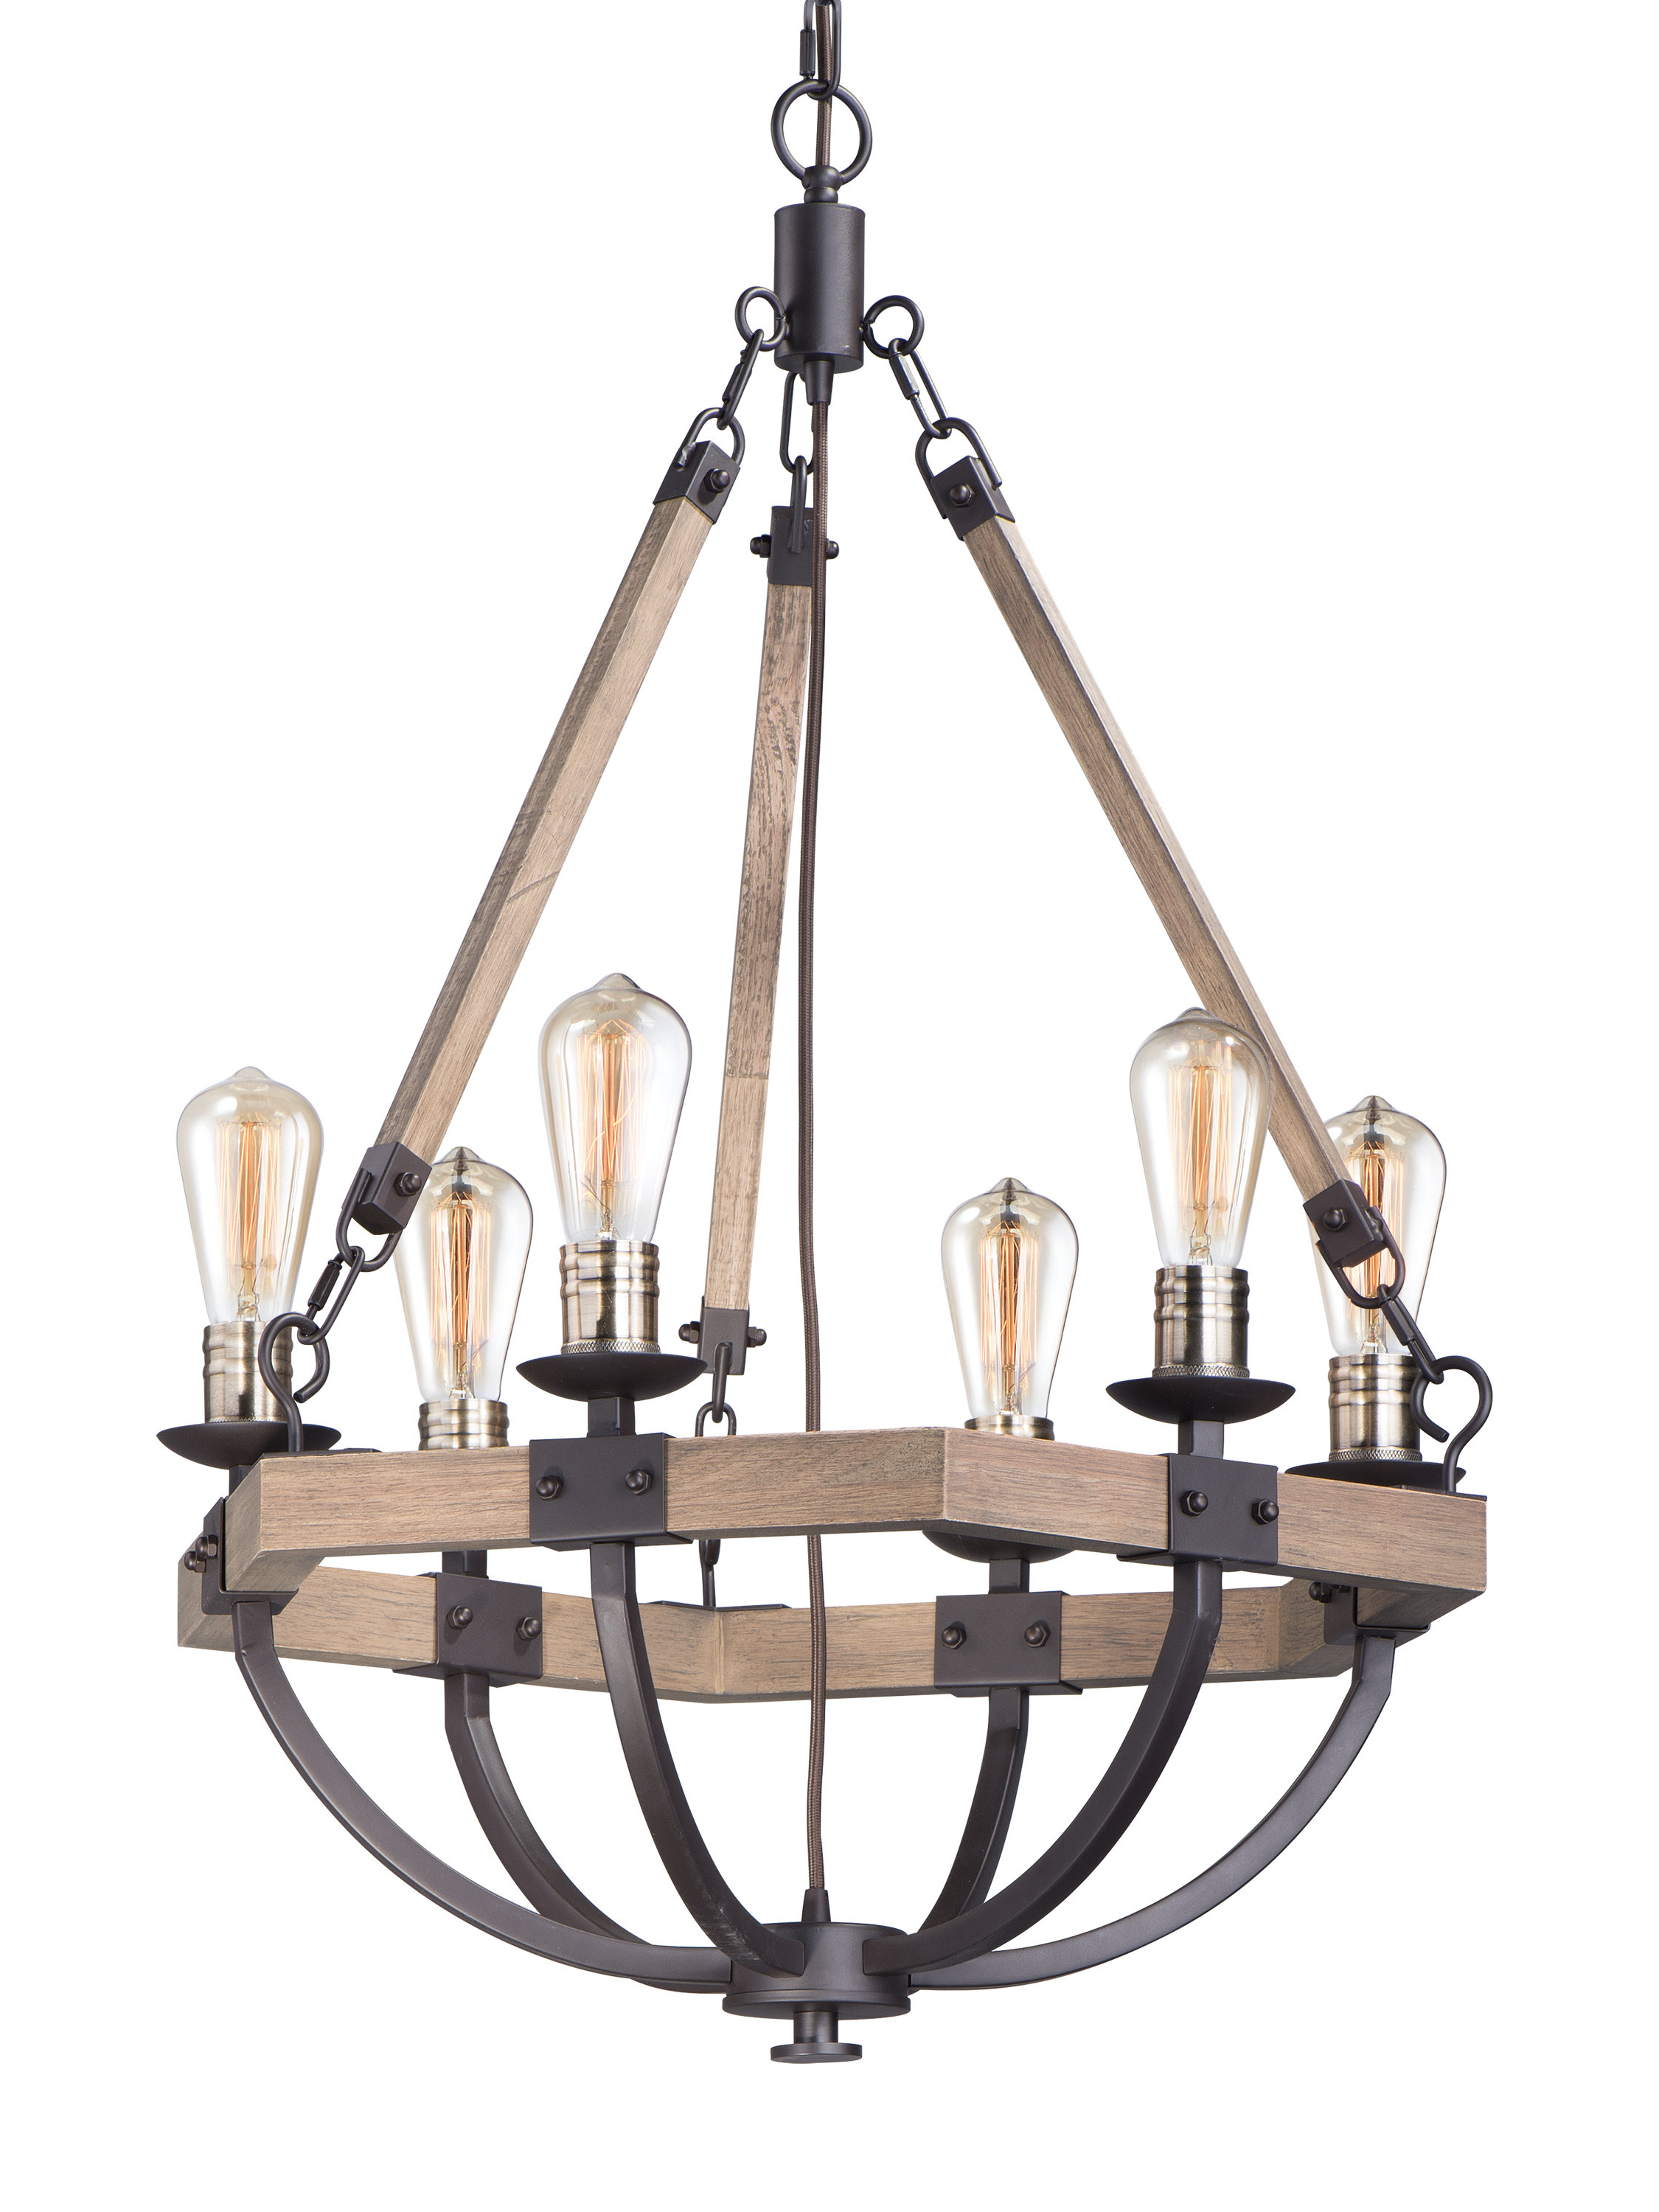 2019 Killion 6 Light Wagon Wheel Chandelier Intended For Sherri 6 Light Chandeliers (View 19 of 25)